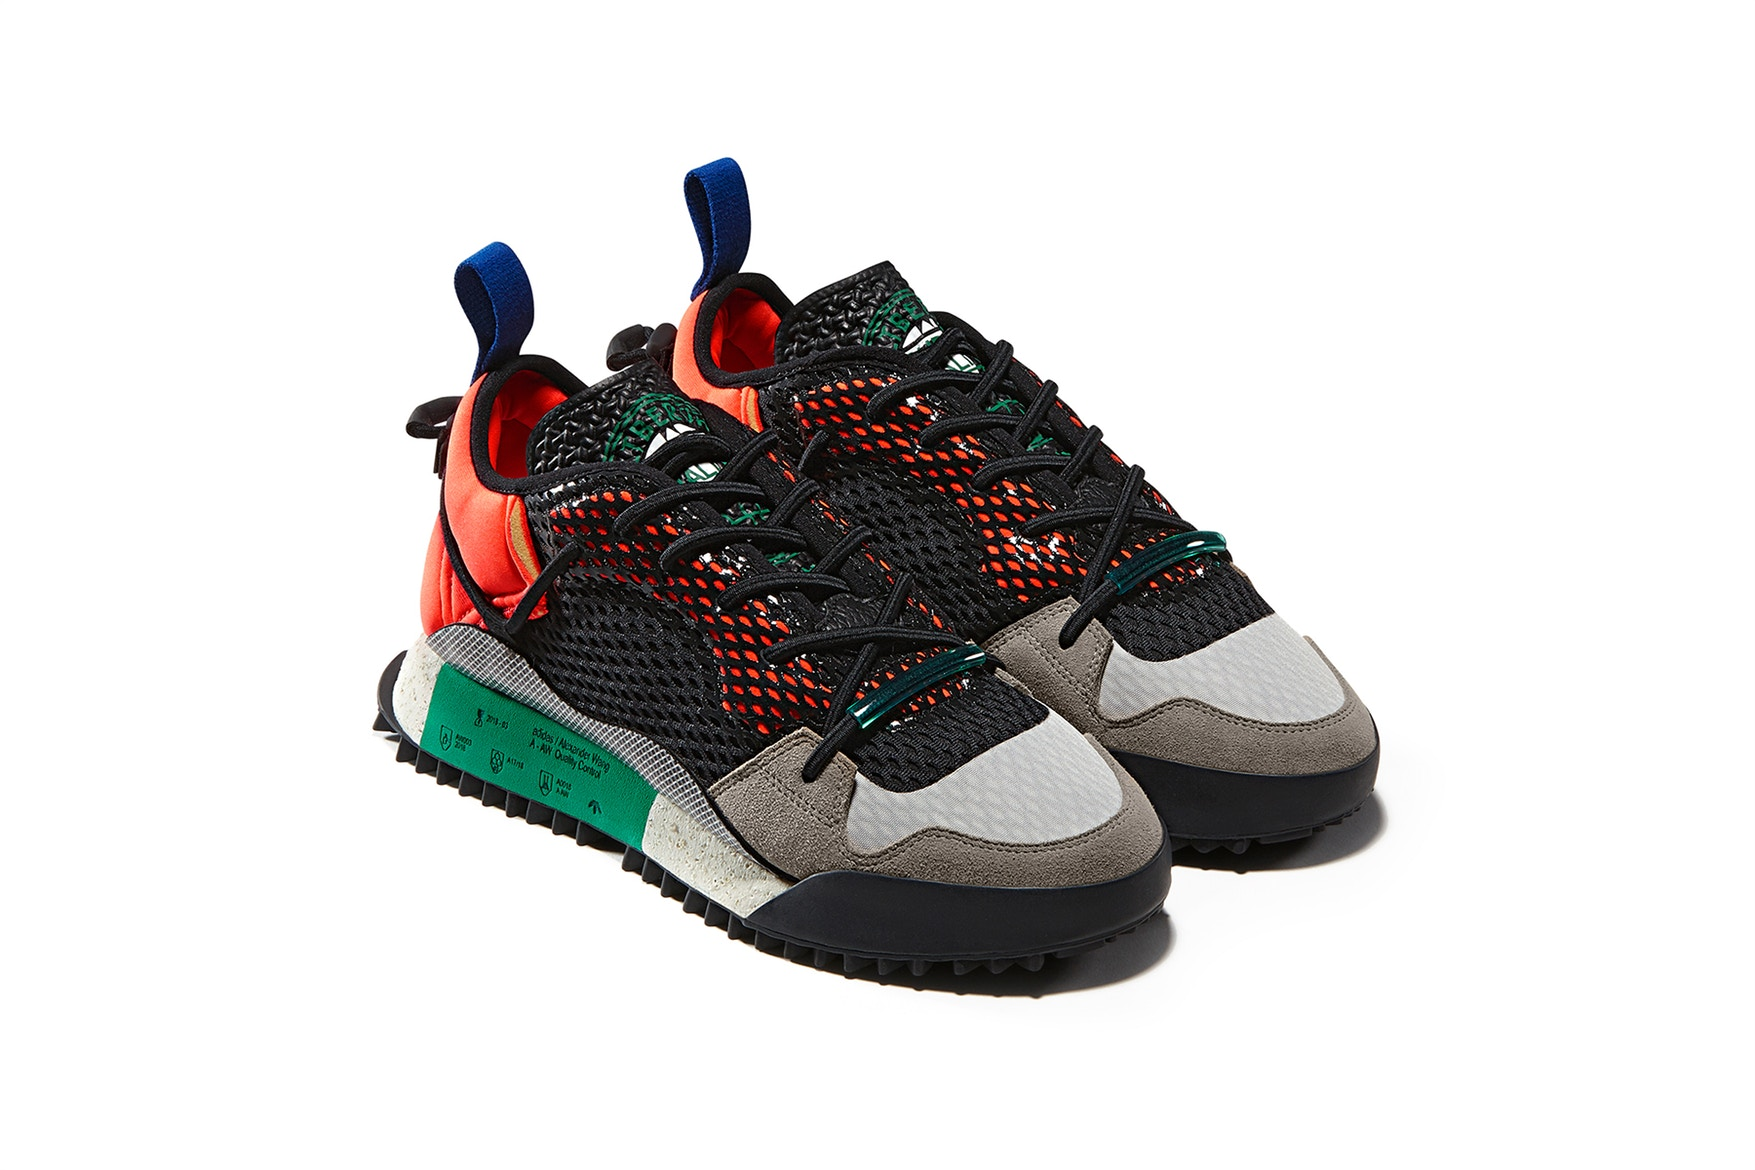 adidas Originals by Alexander Wang Season 3 - Second Drop | Dead Stock